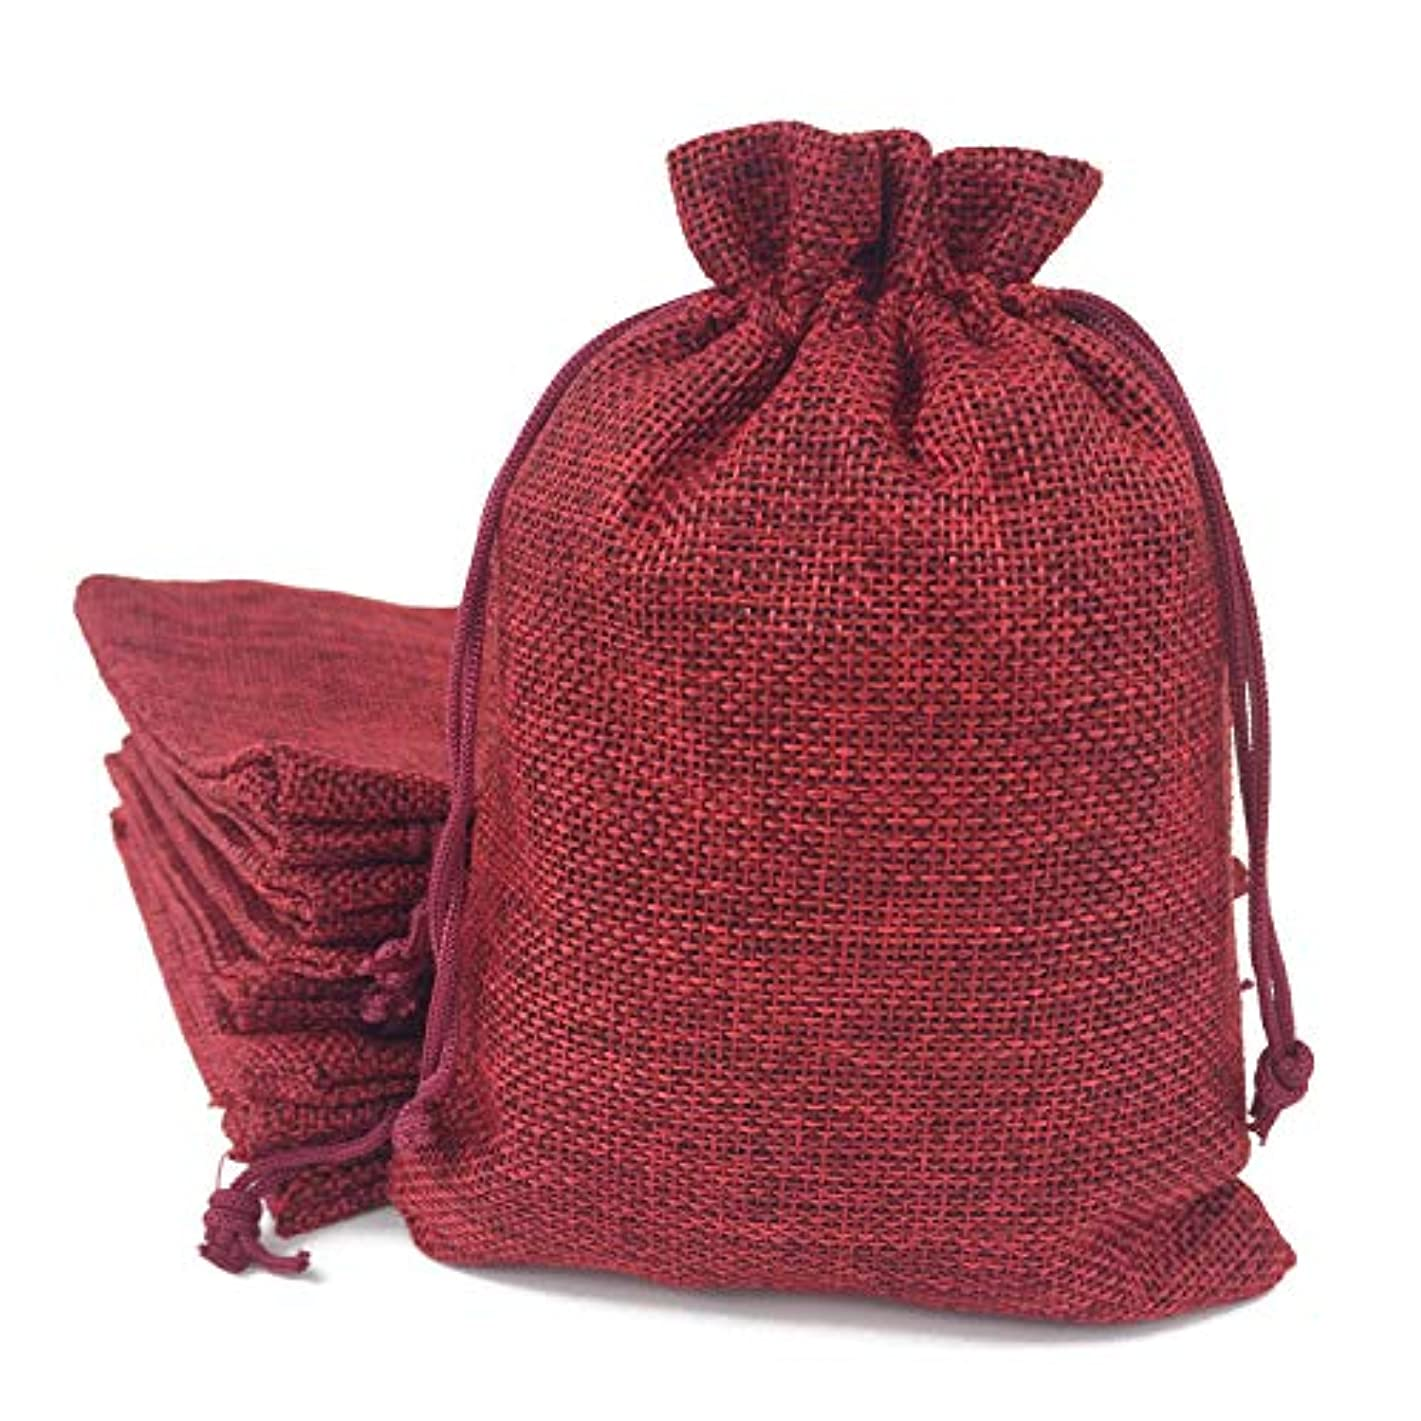 50PCS Burlap Bags with Drawstring Gift Jute bags Included Cotton Lining (4 X 5.5 Inch, 05 Red)